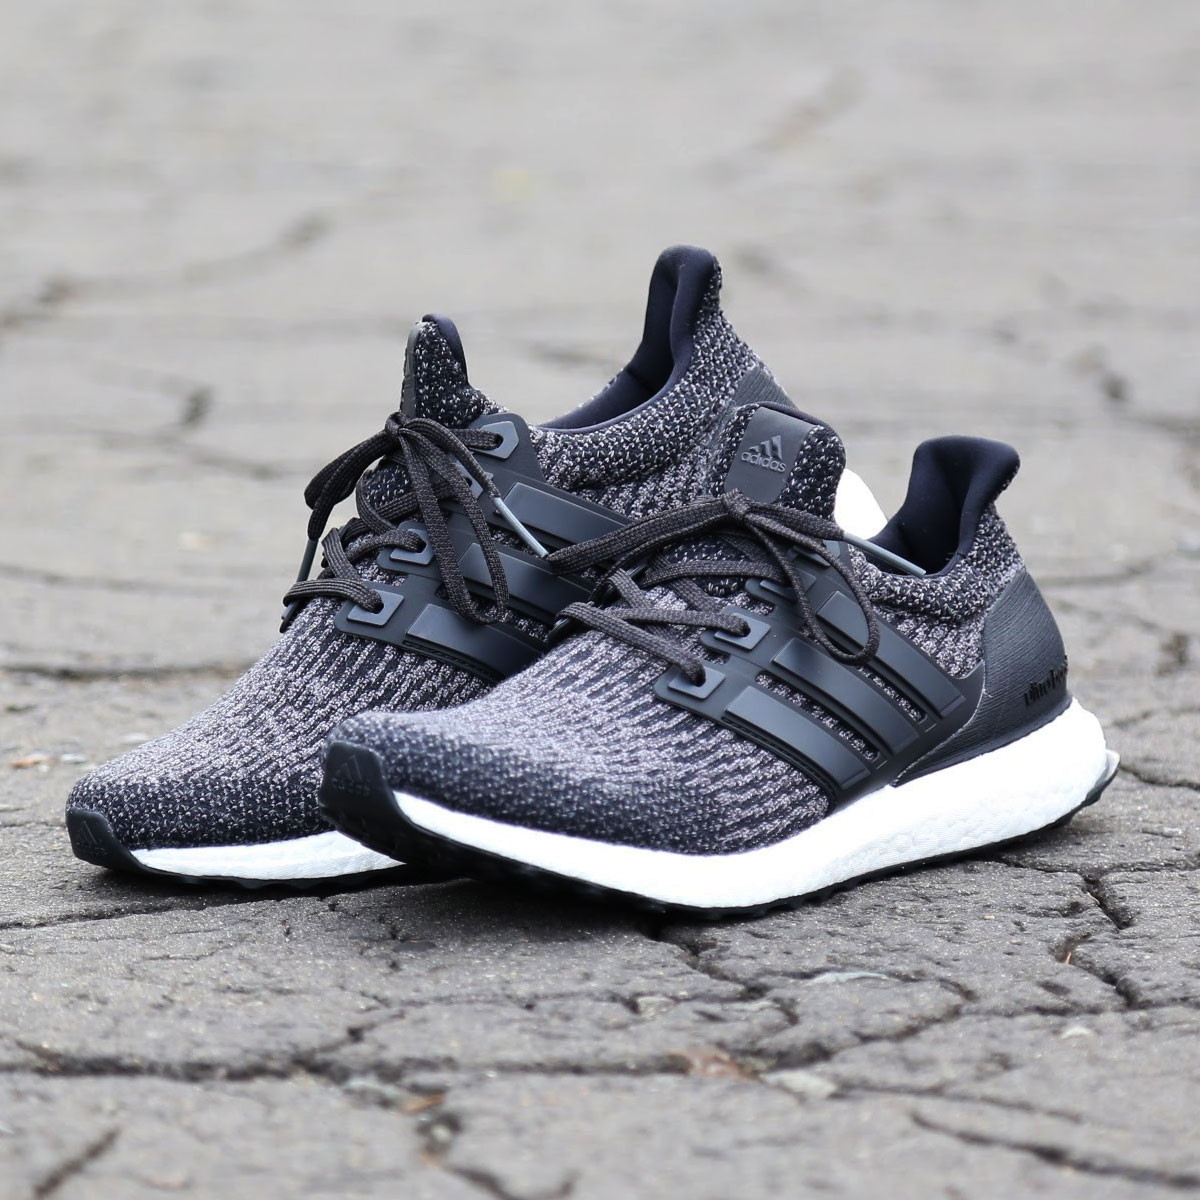 87d6b466b96 adidas Originals Ultra BOOST WOOL (Adidas originals ultra boost wool) Core  Black Black Utility Black 17FW-S